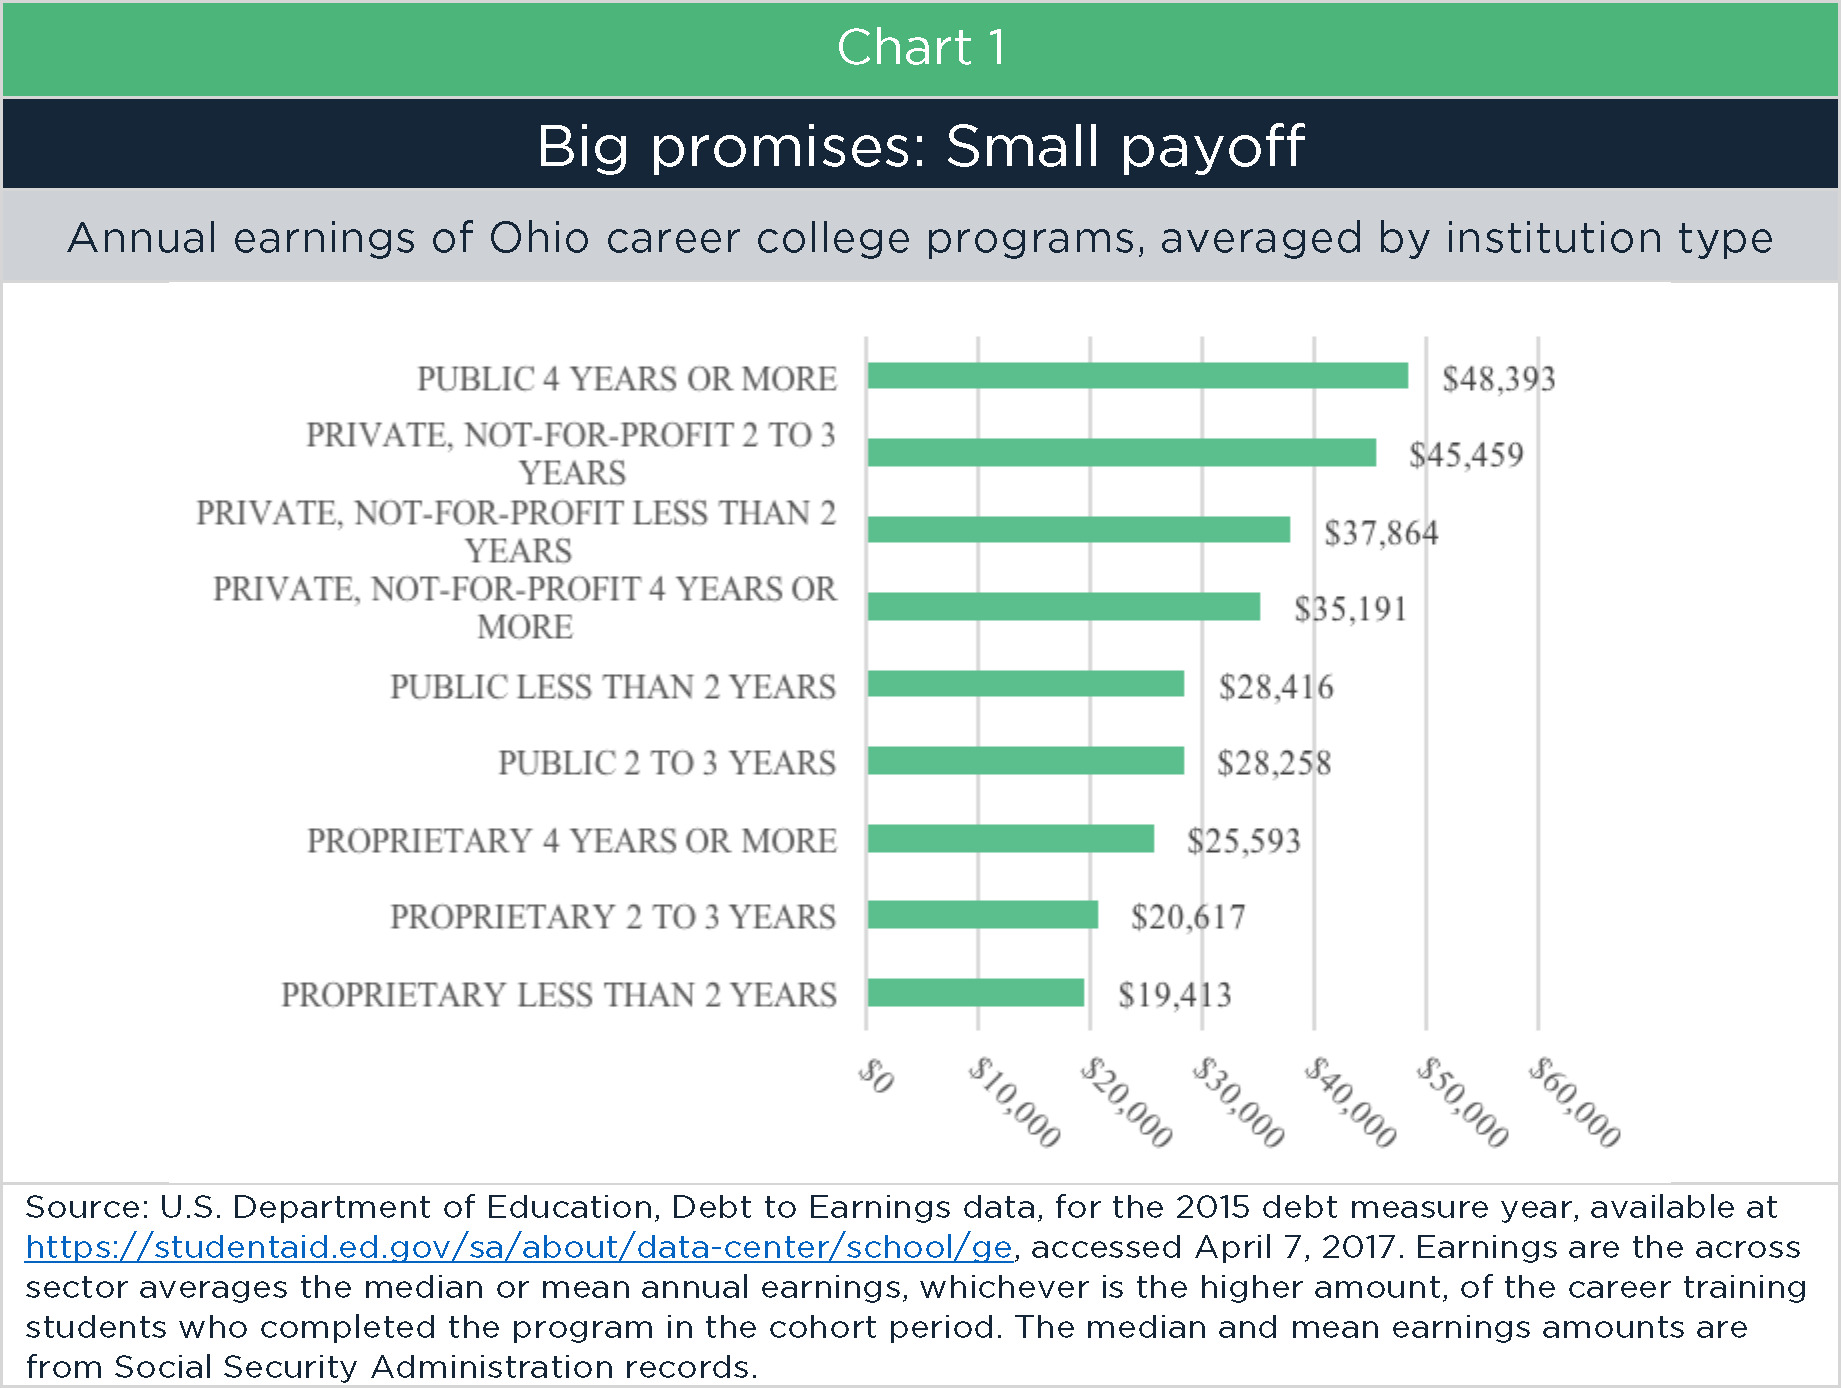 Risky business: For-profit education in Ohio